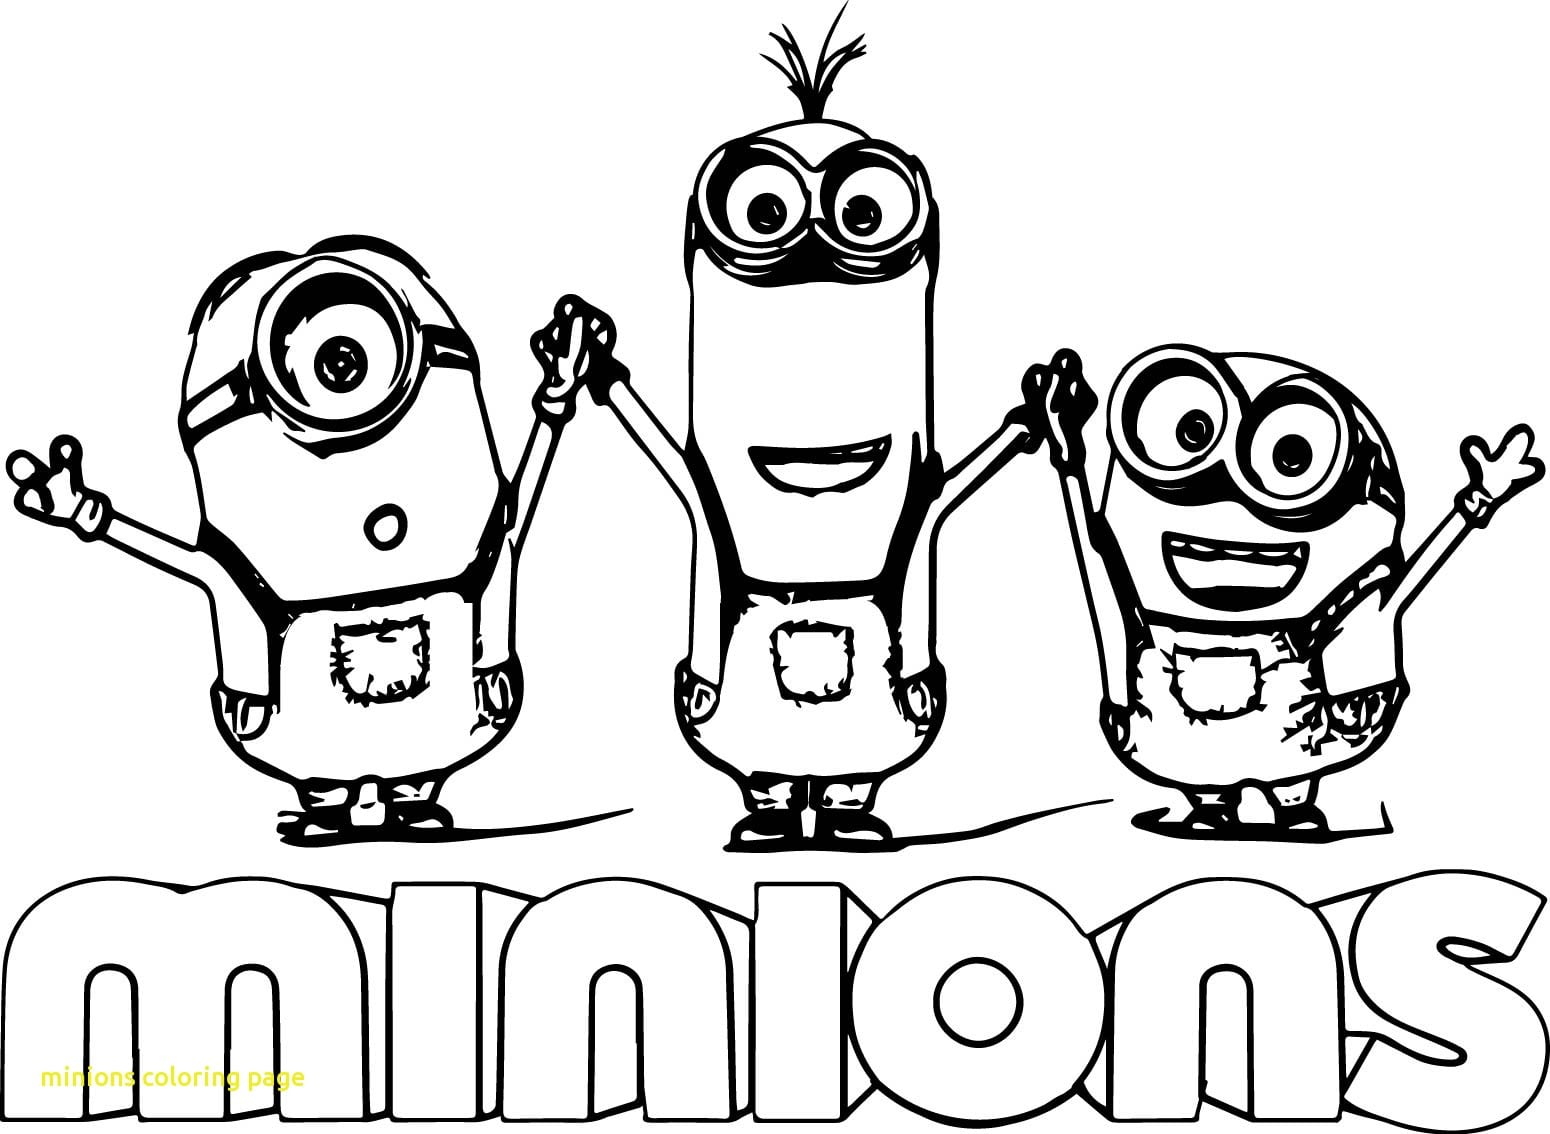 Marvelous Design Minions Coloring Pages Minions Coloring Page With